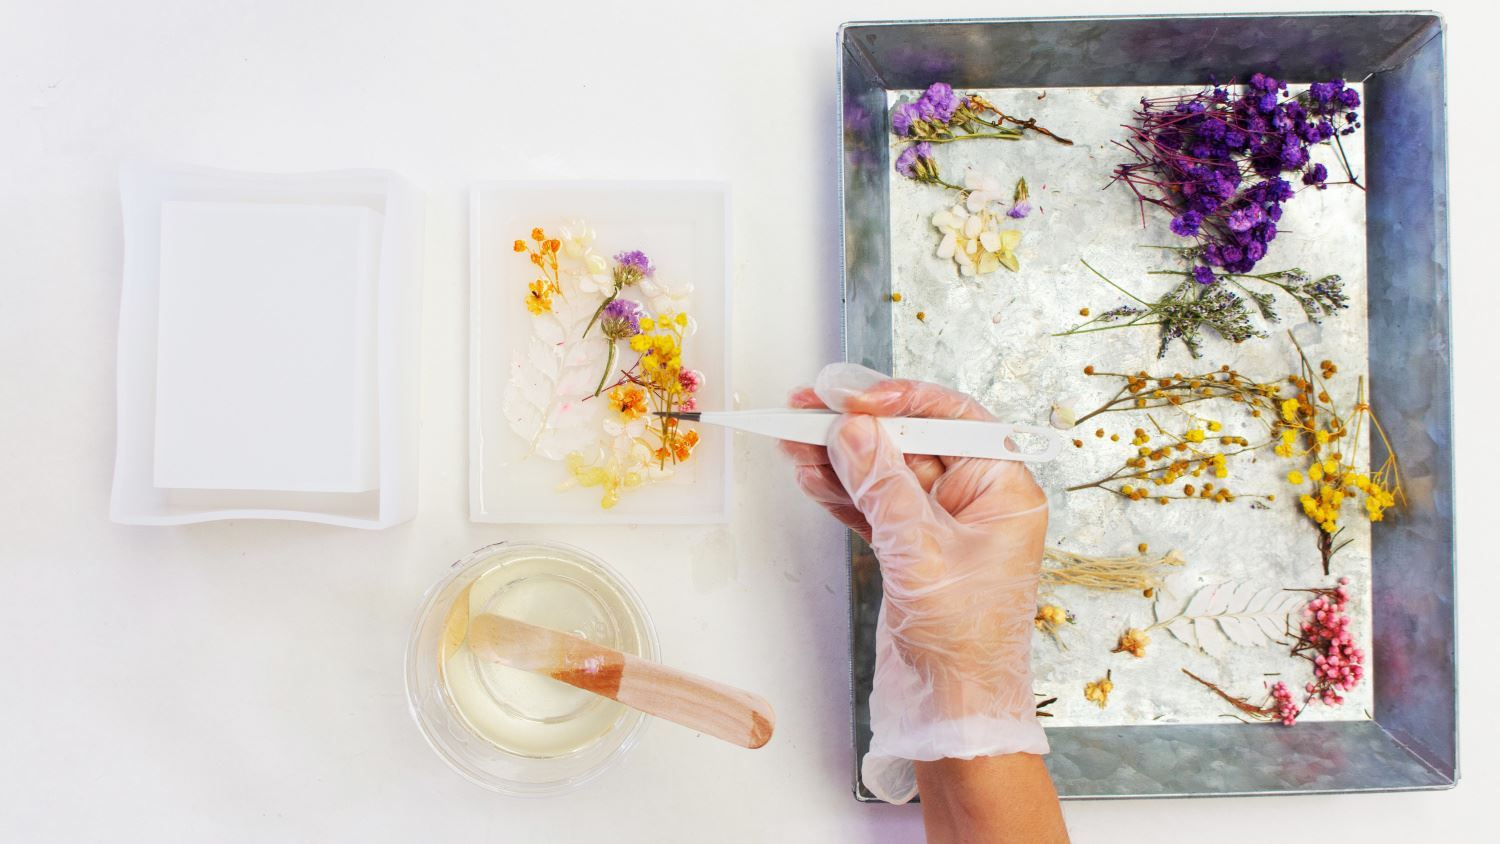 Place flowers into mold and cover with resin